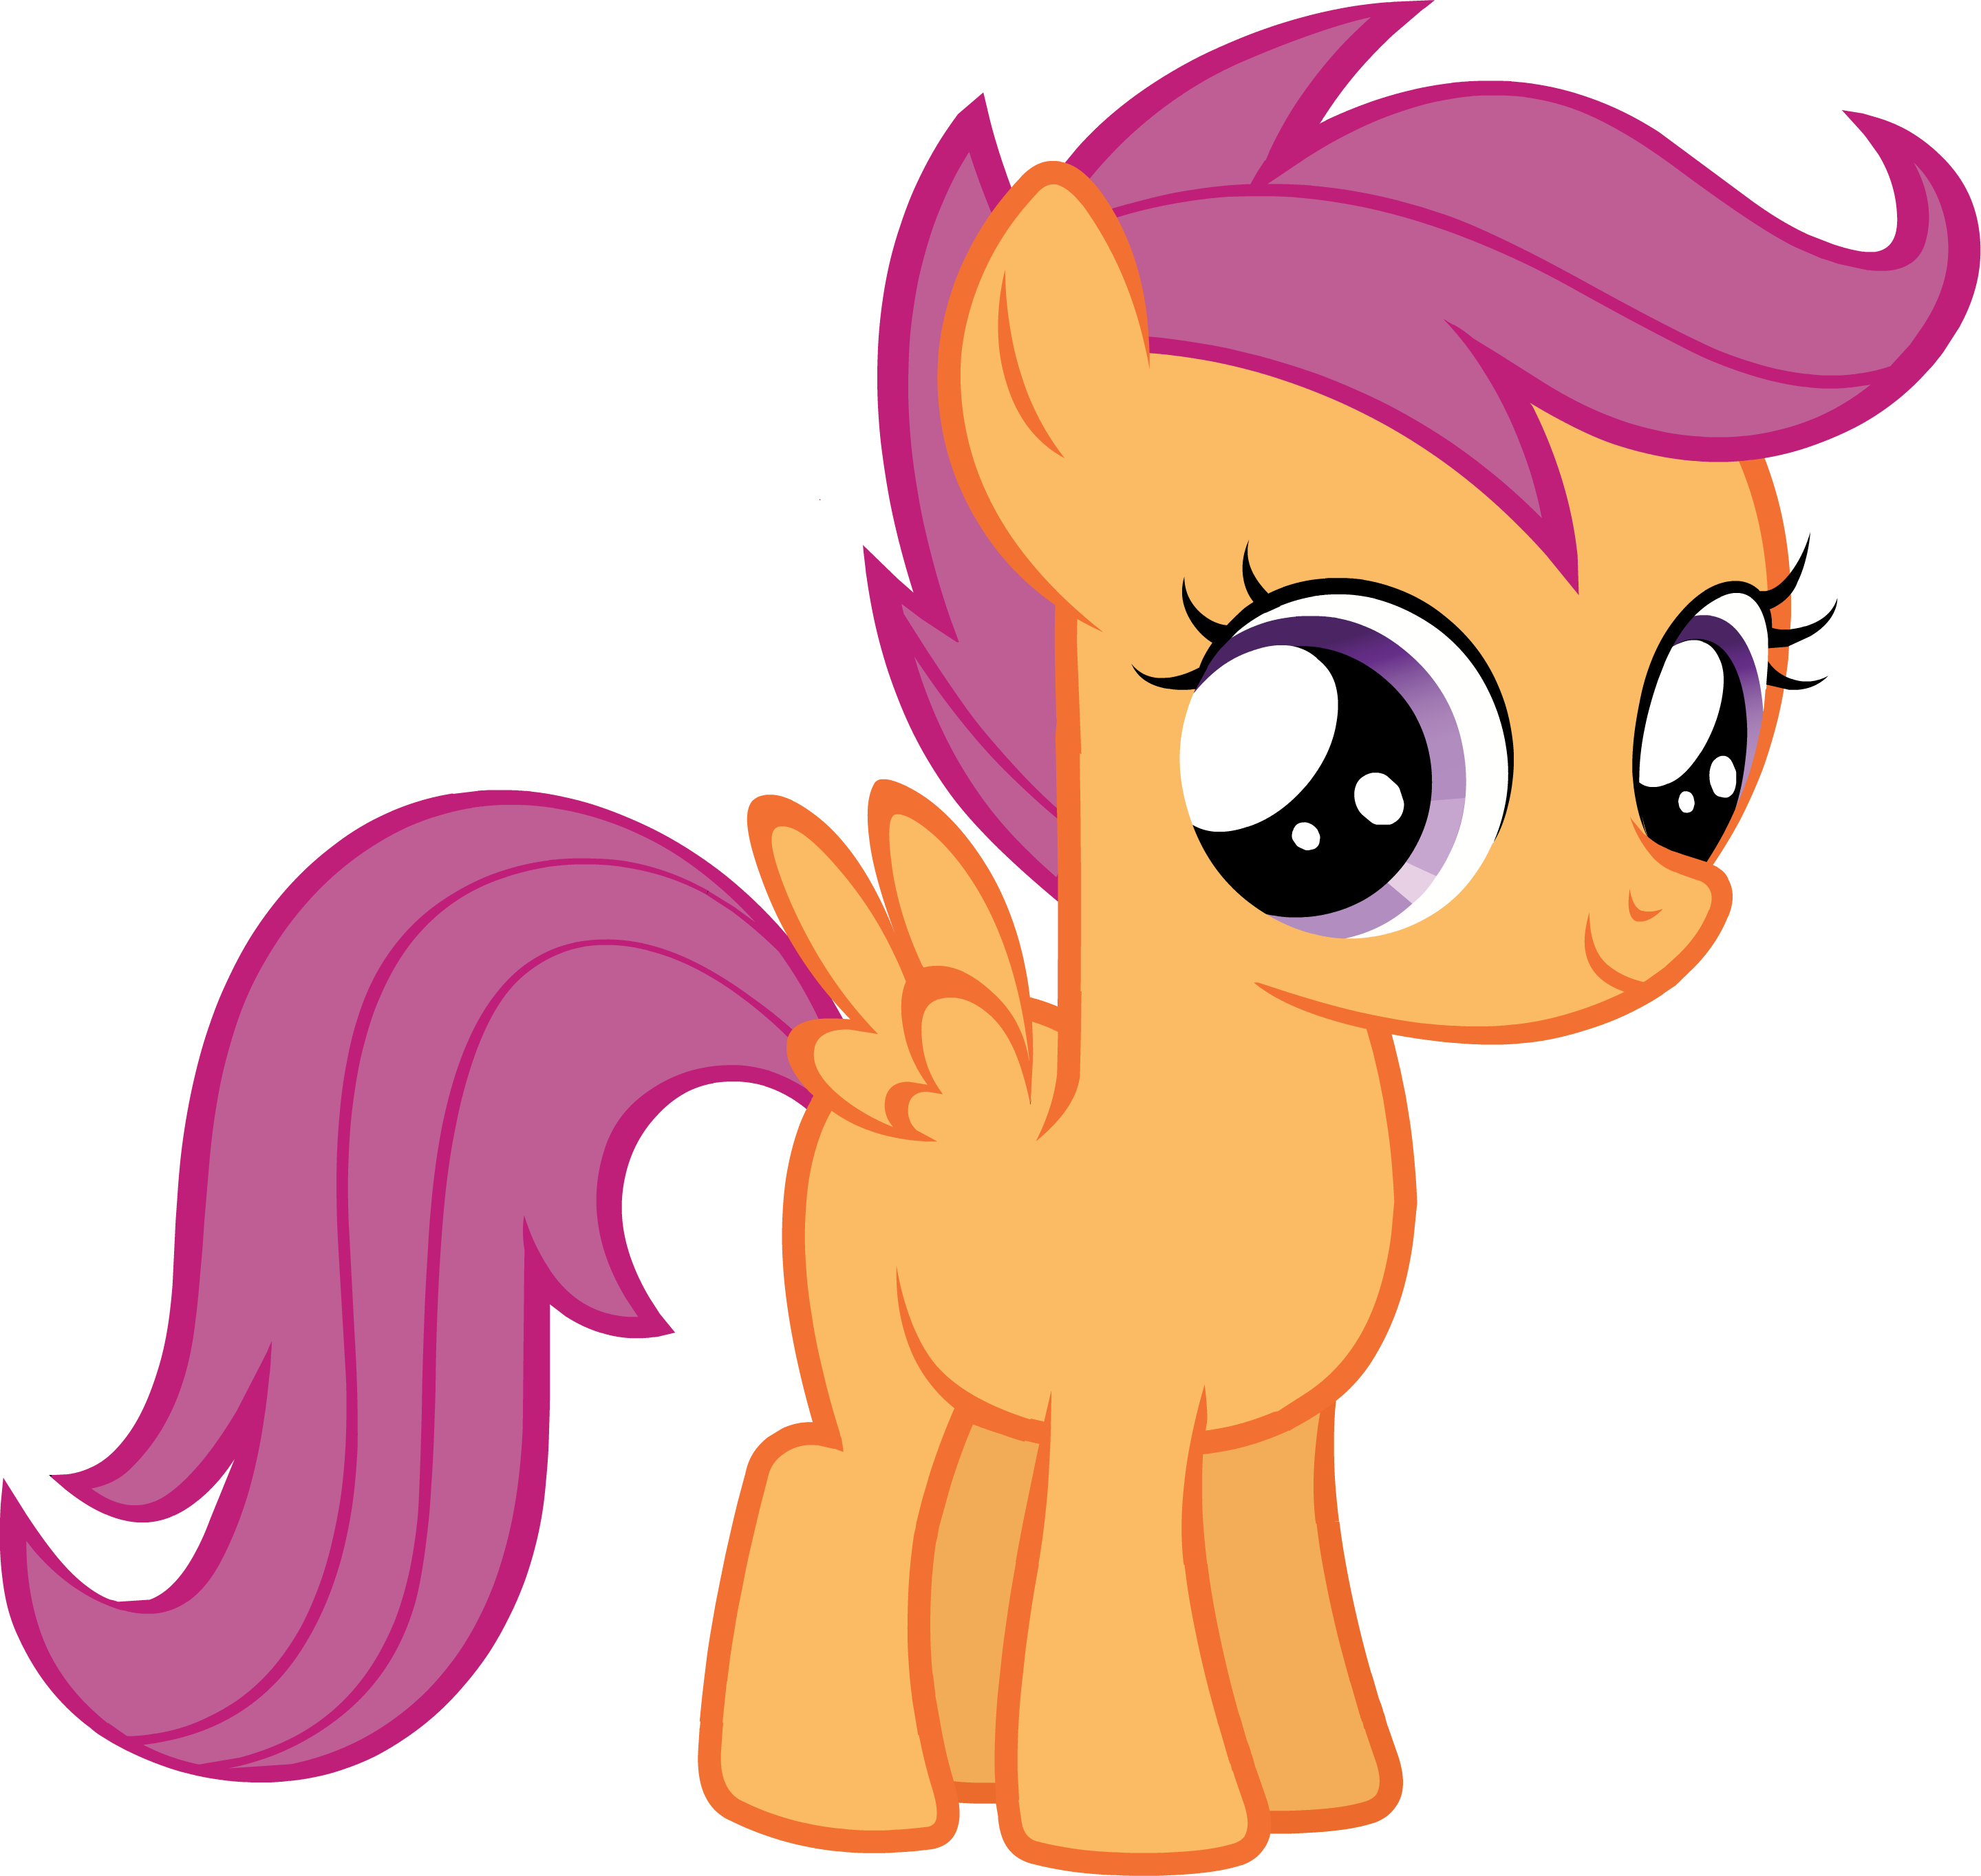 Pin On Places To Visit Scootaloo by fr3zo on deviantart. pin on places to visit